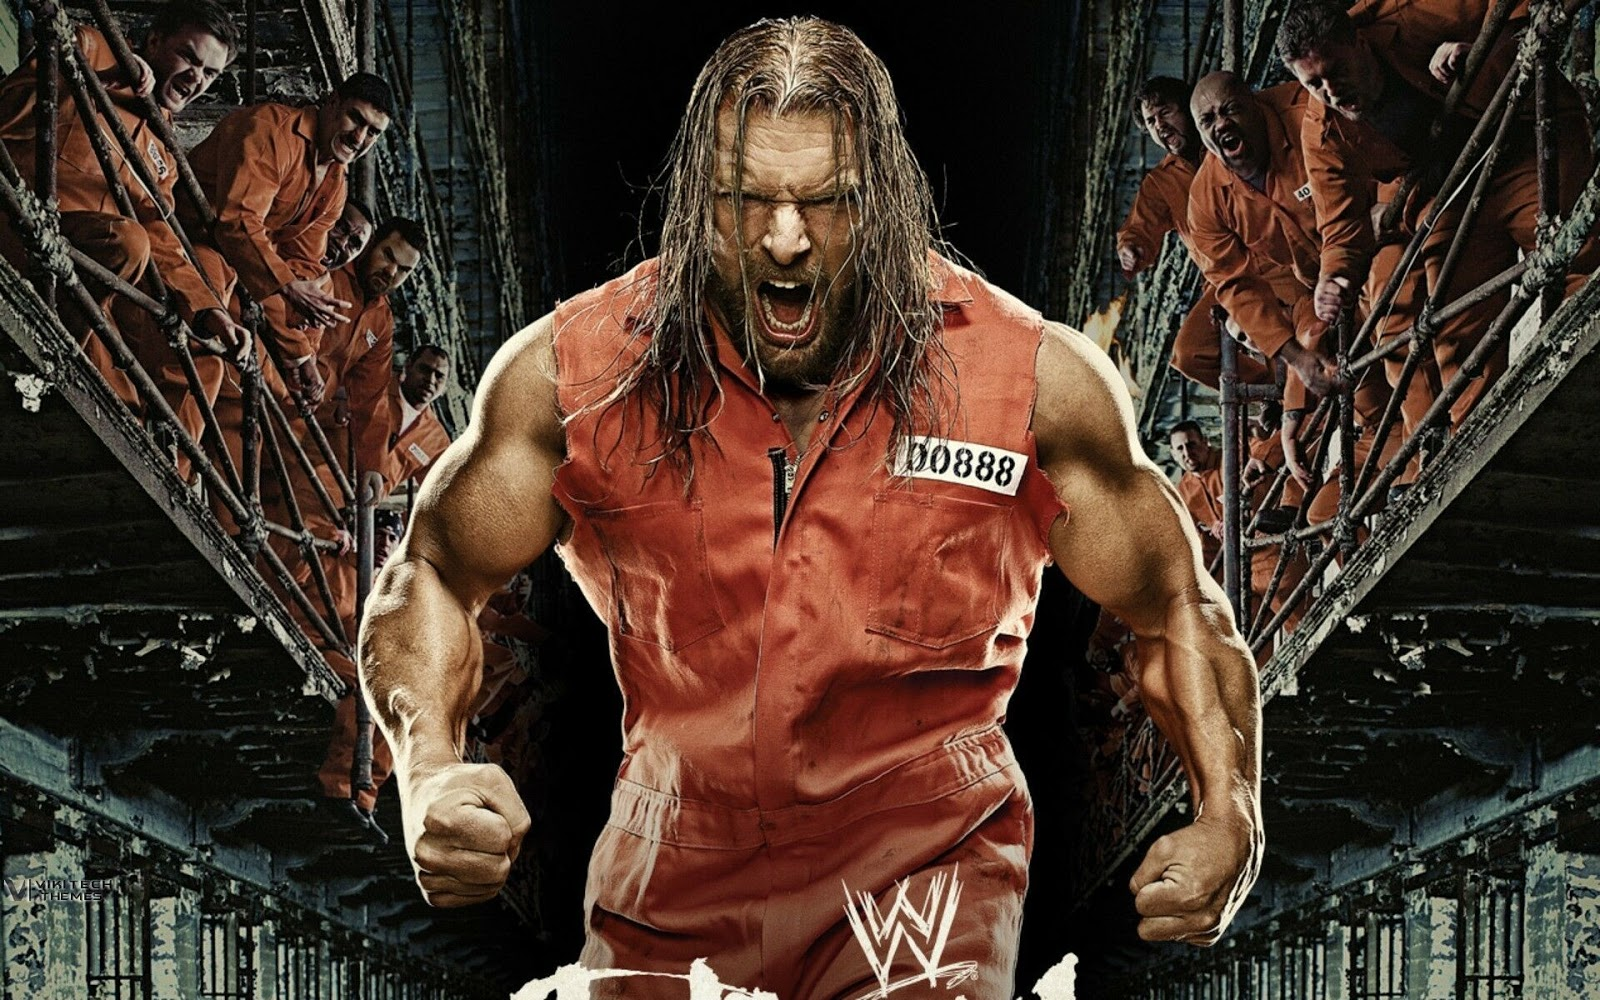 Free Download WWE Full HD Wallpapers 2013 (1920x1200